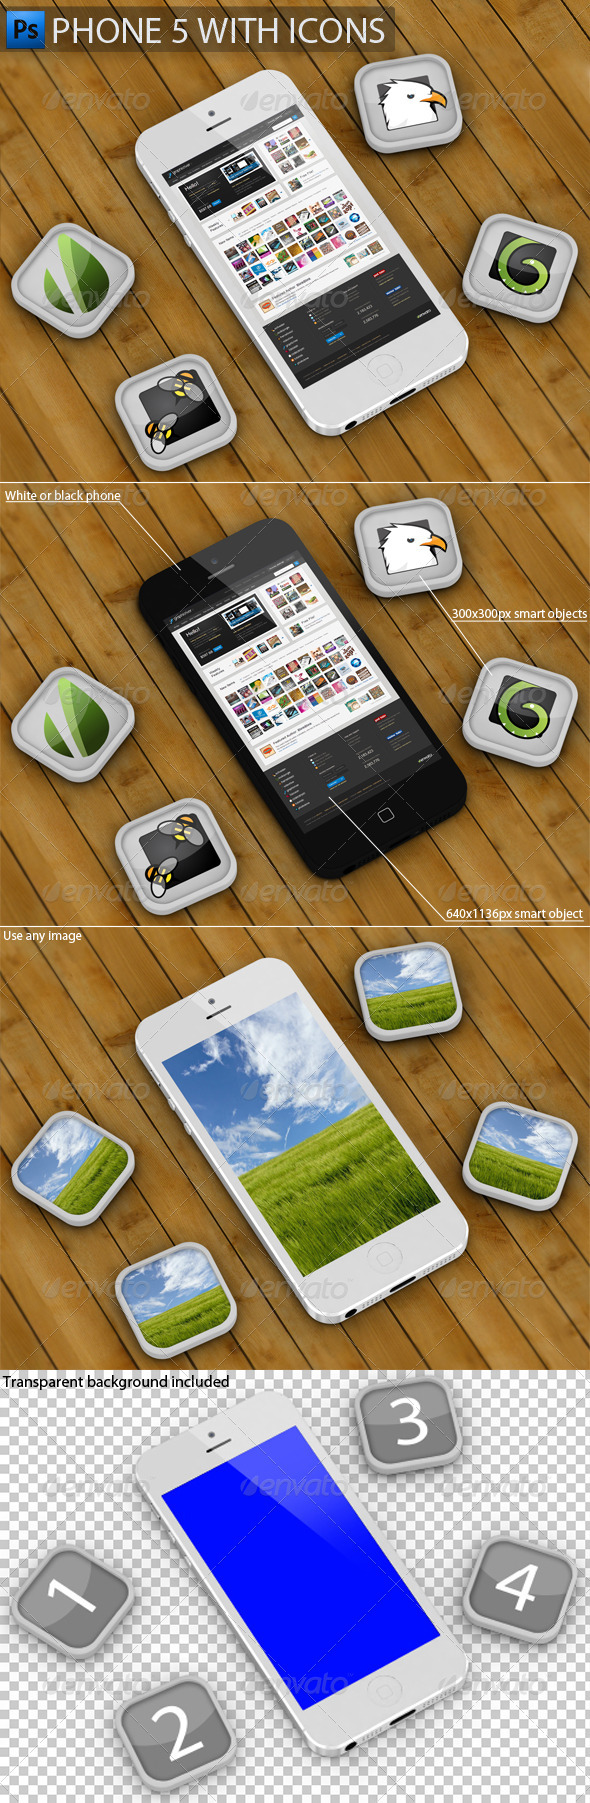 Phone 5 with Icons Mockup - Mobile Displays